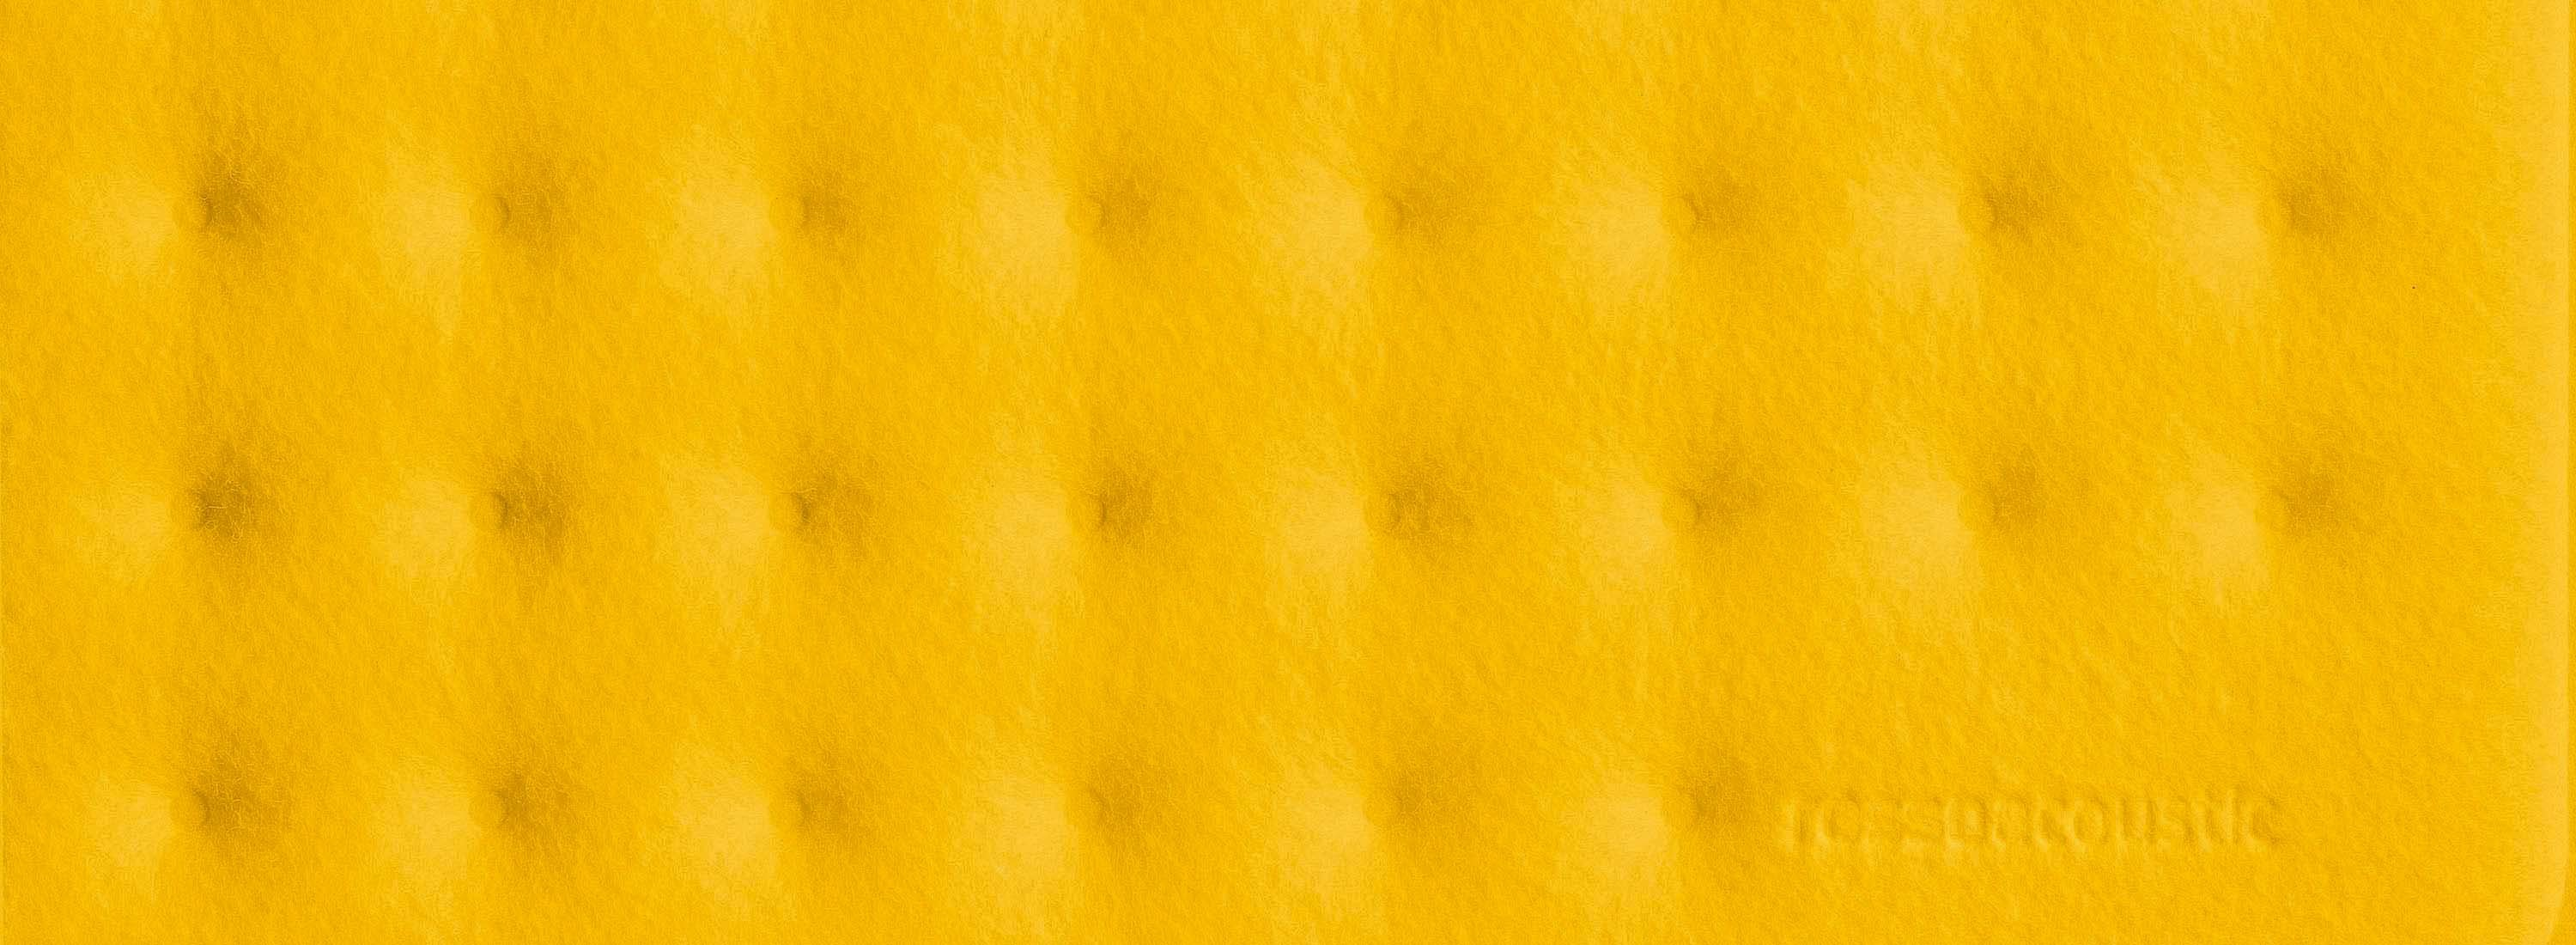 Rossoacoustic PAD Q 600 Plus, 900 x 900 x 60 mm, yellow field